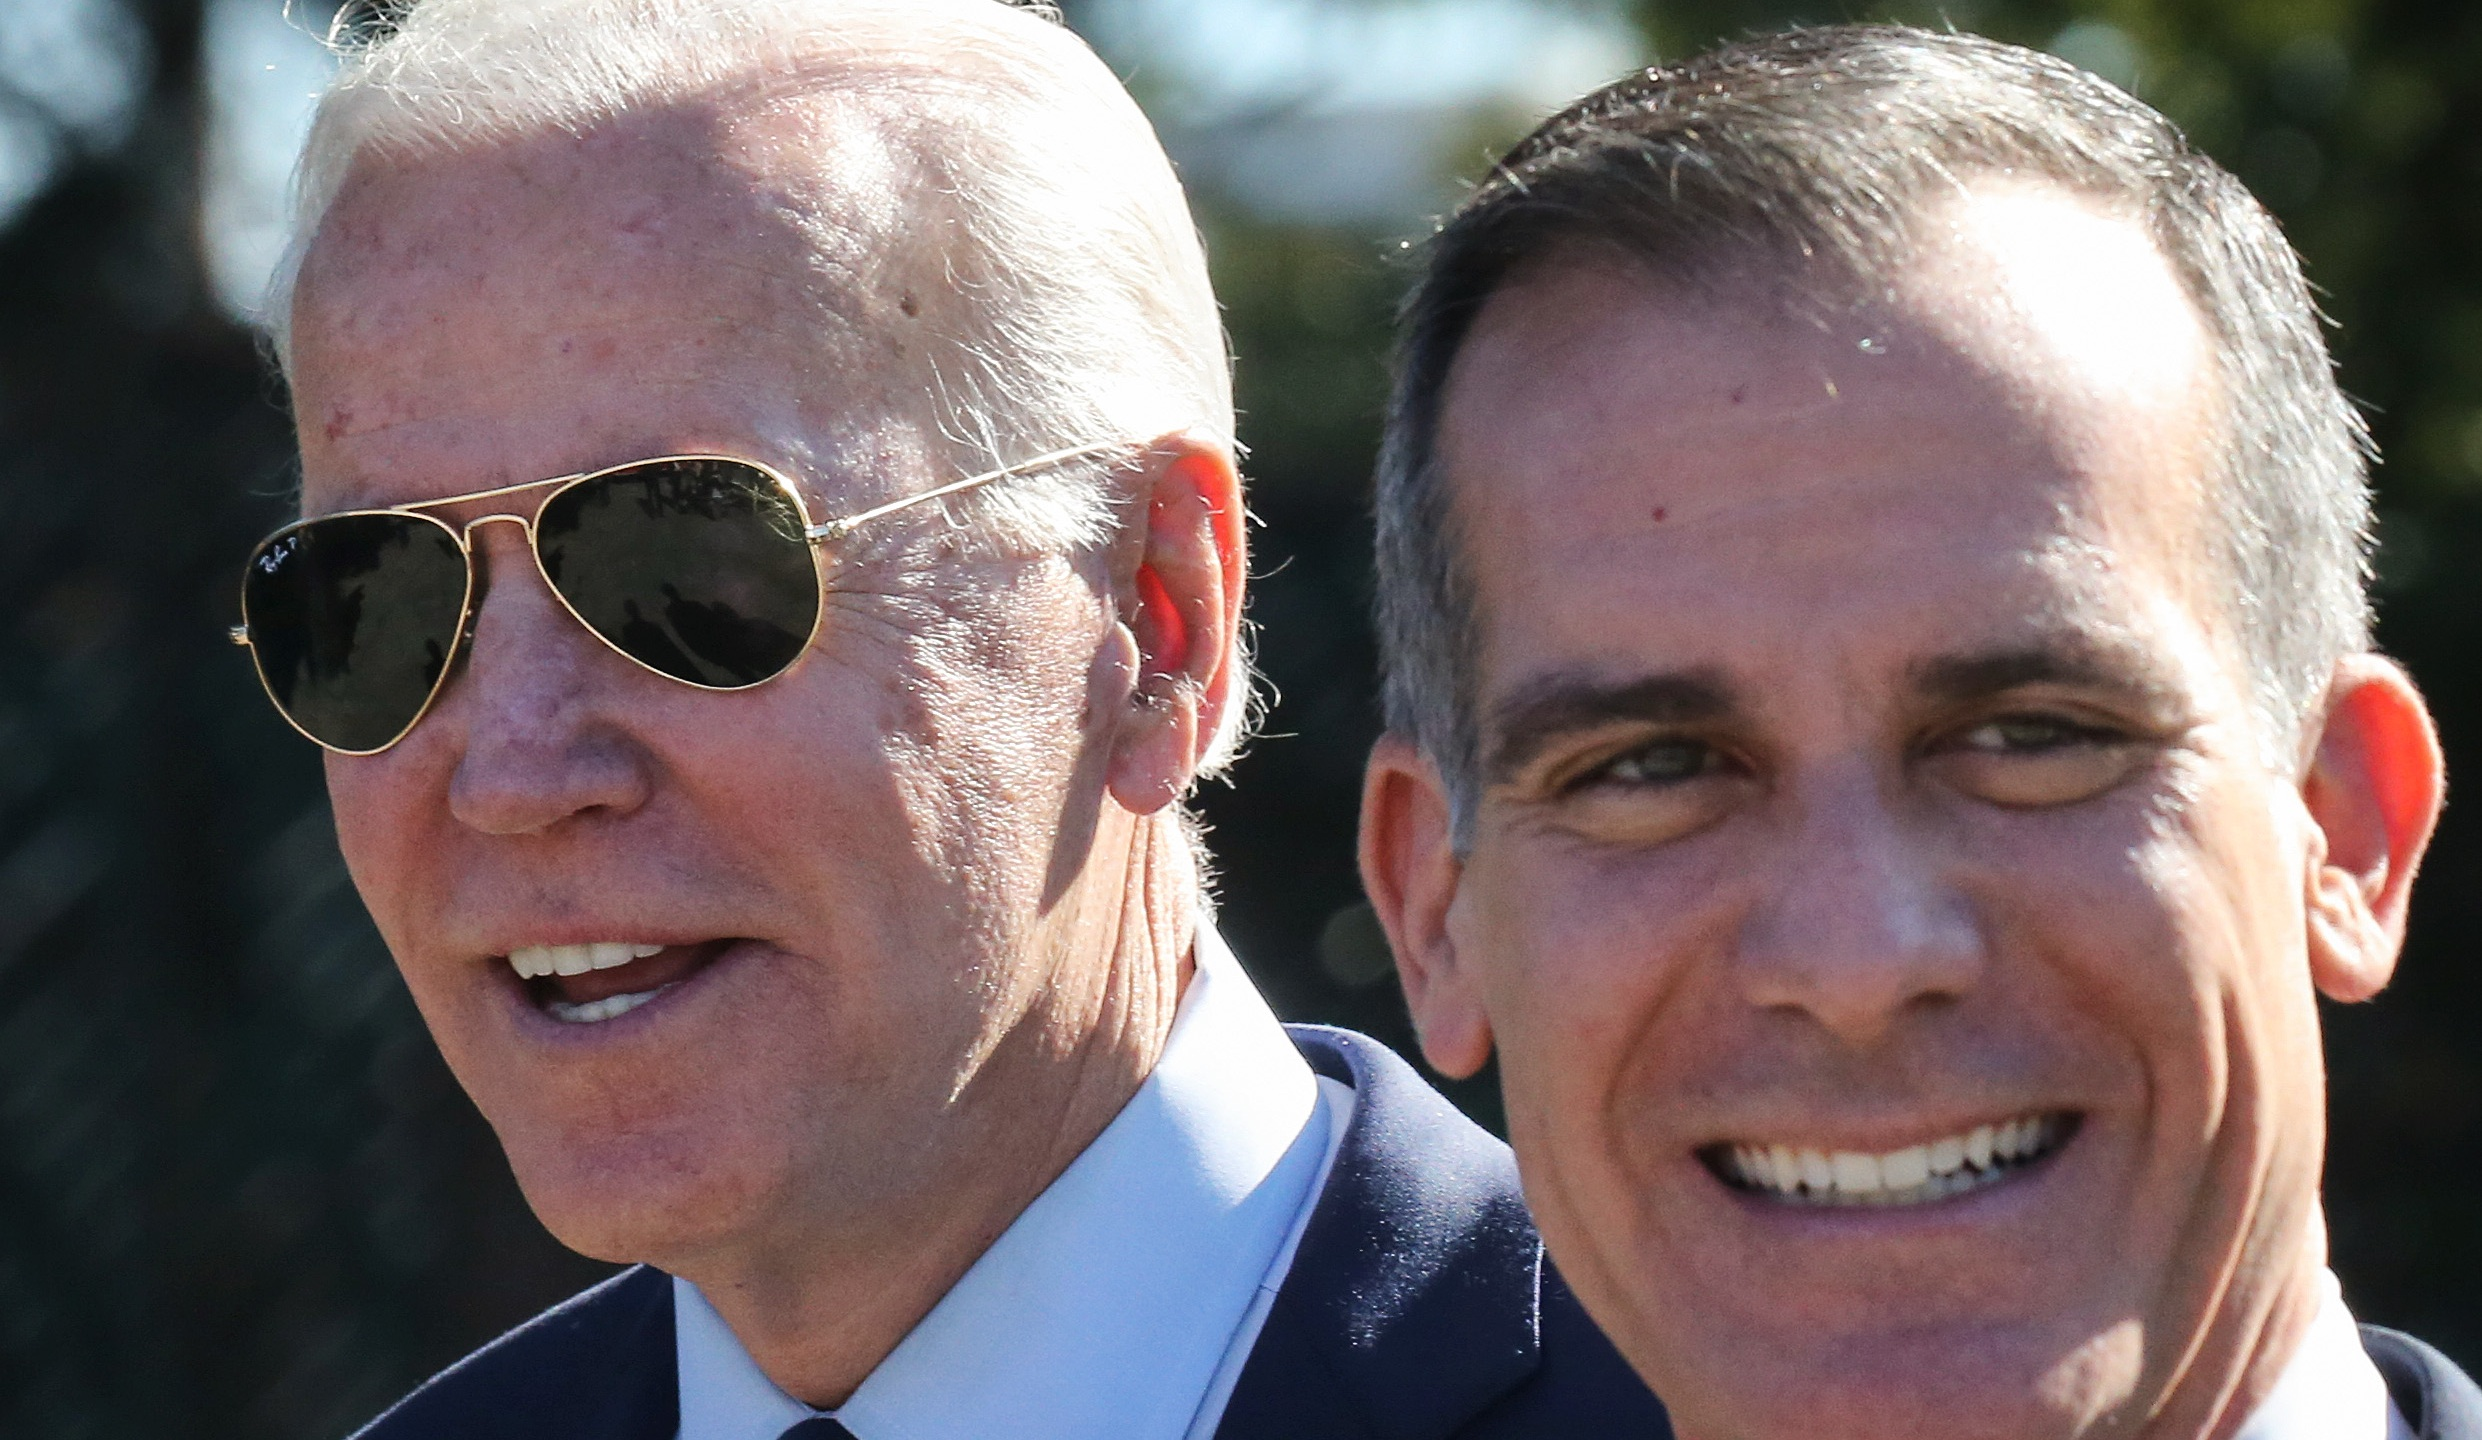 Los Angeles Mayor Eric Garcetti, right, was named in July as President Biden's nominee for U.S. ambassador to India.(Mario Tama / Getty Images)